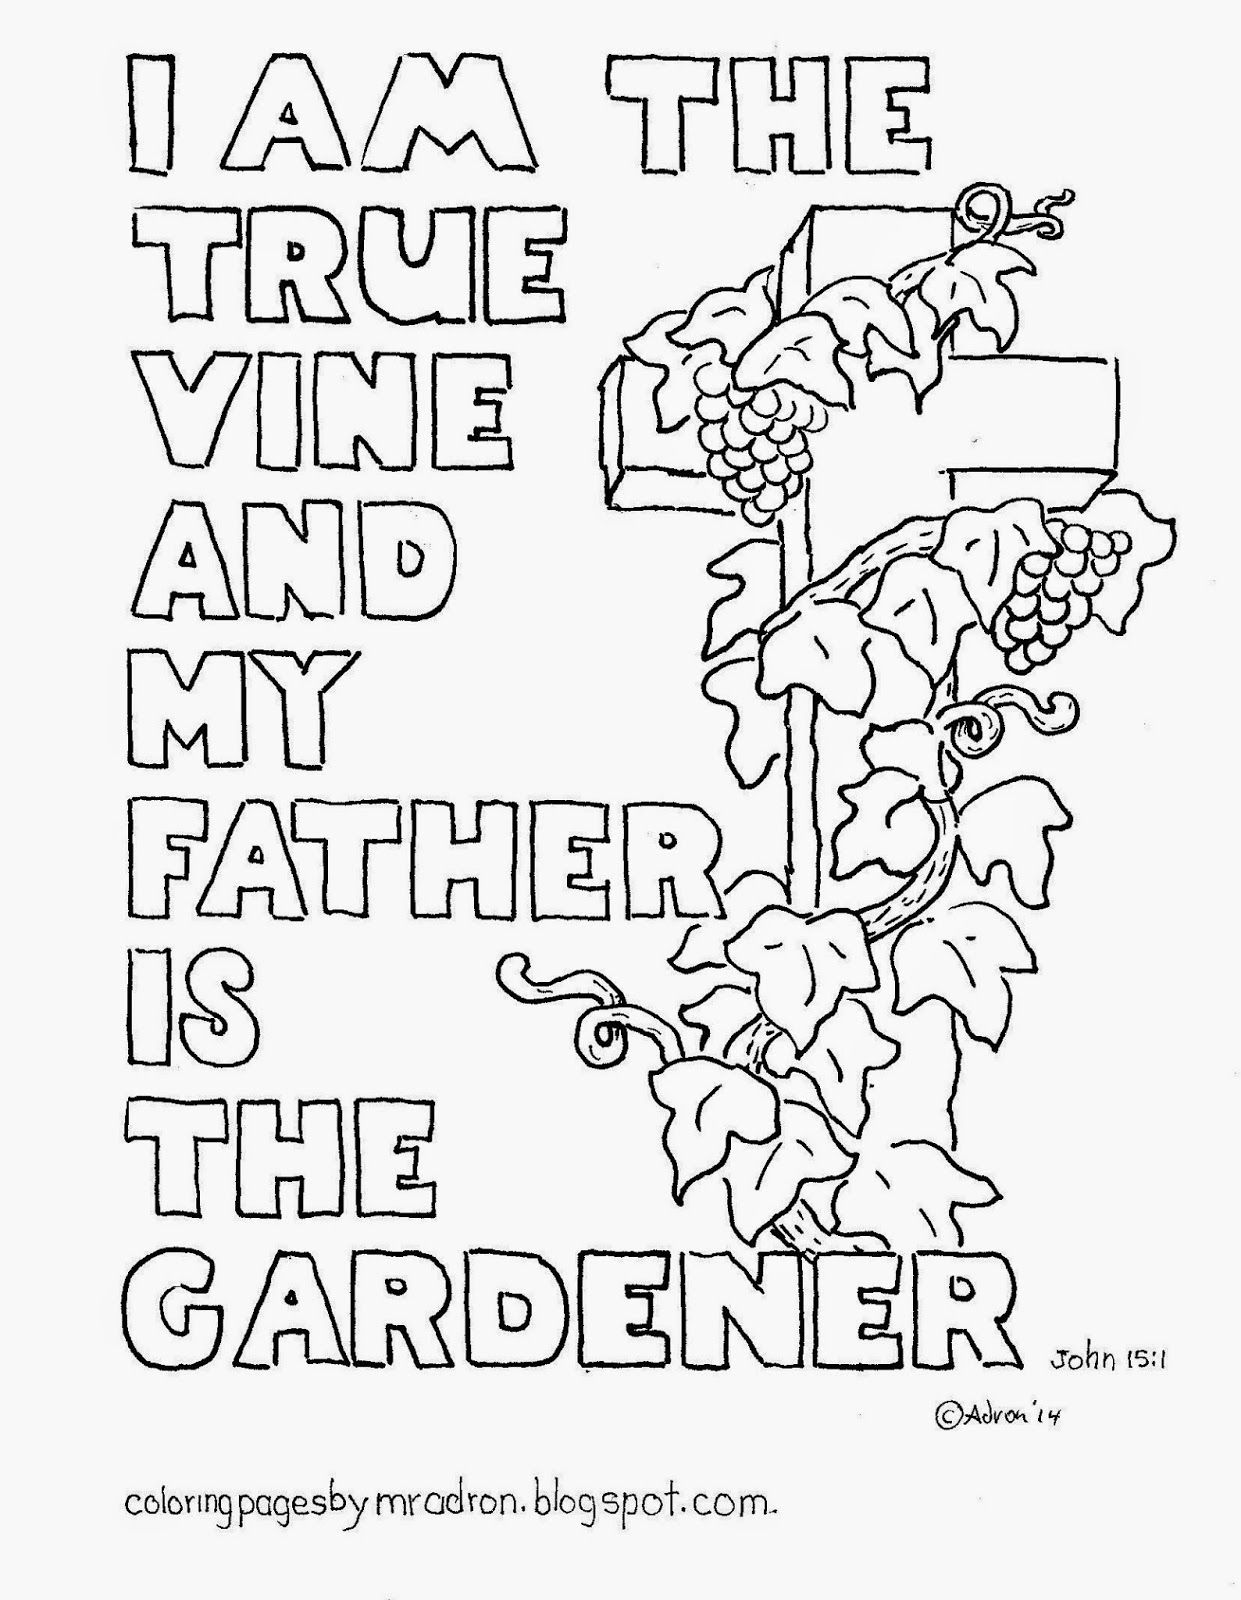 Coloring Pages for Kids by Mr. Adron: I Am The True Vine